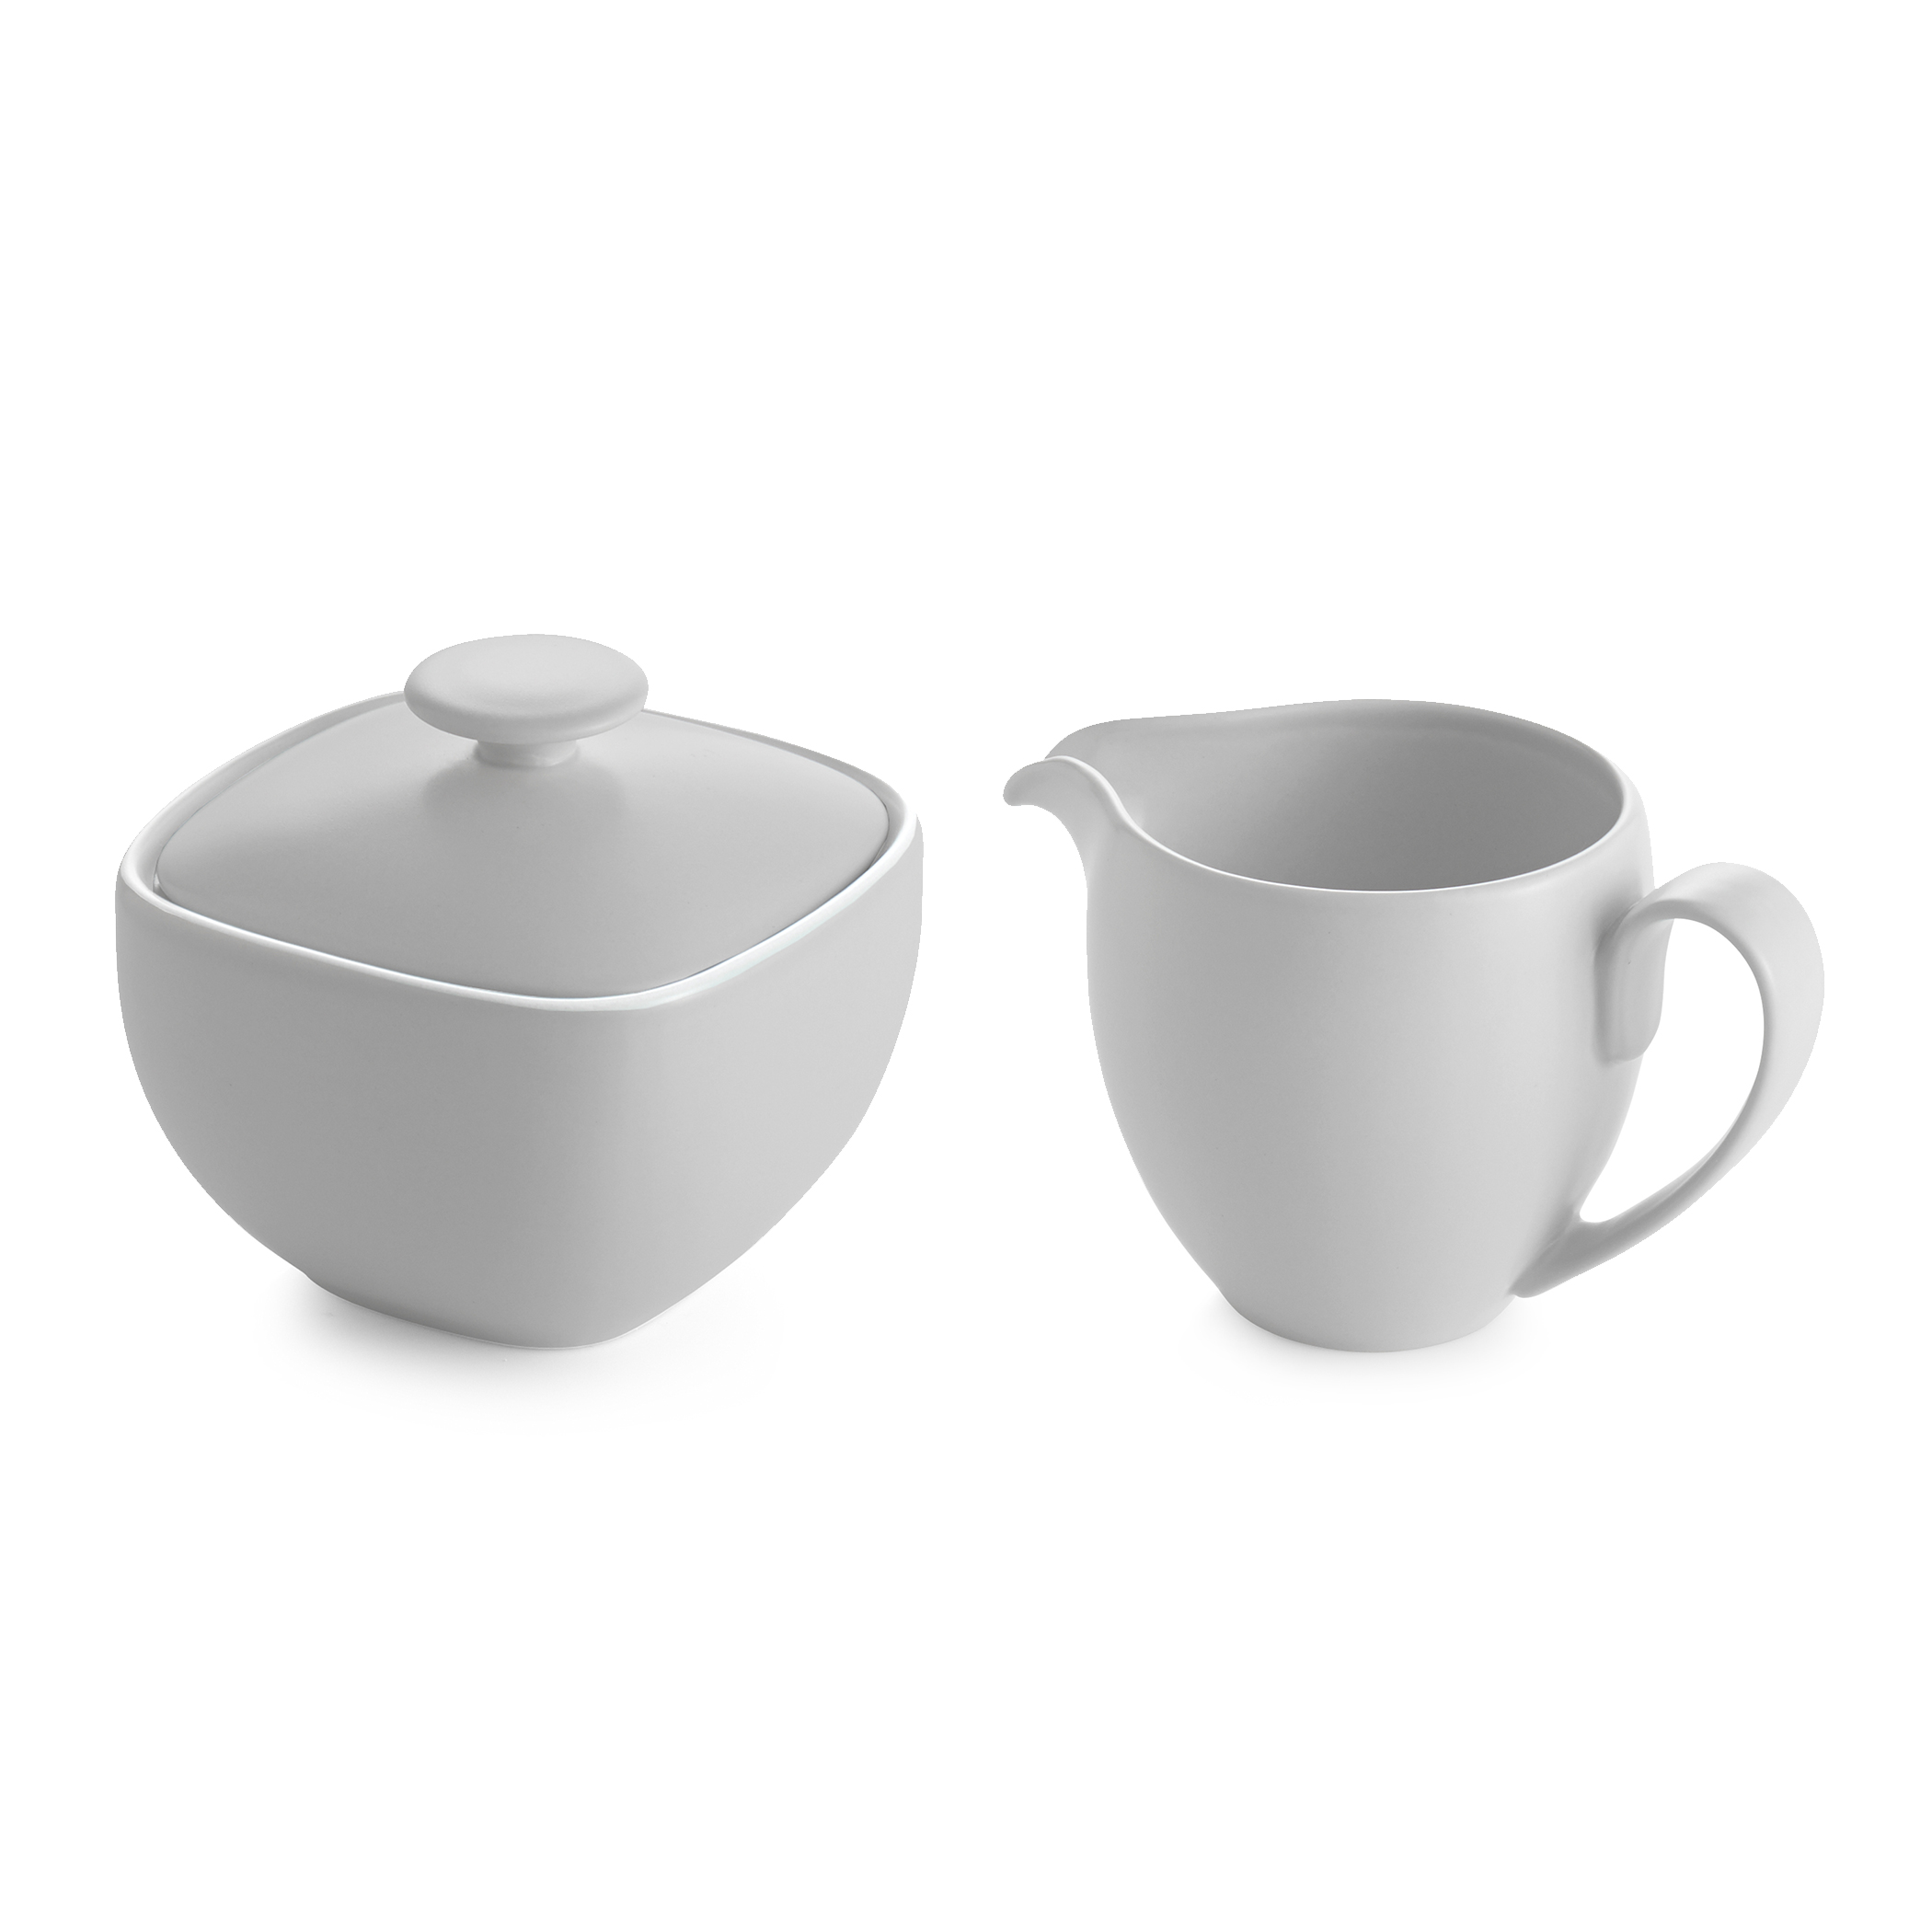 POP Sugar and Creamer Set - Chalk image number 0